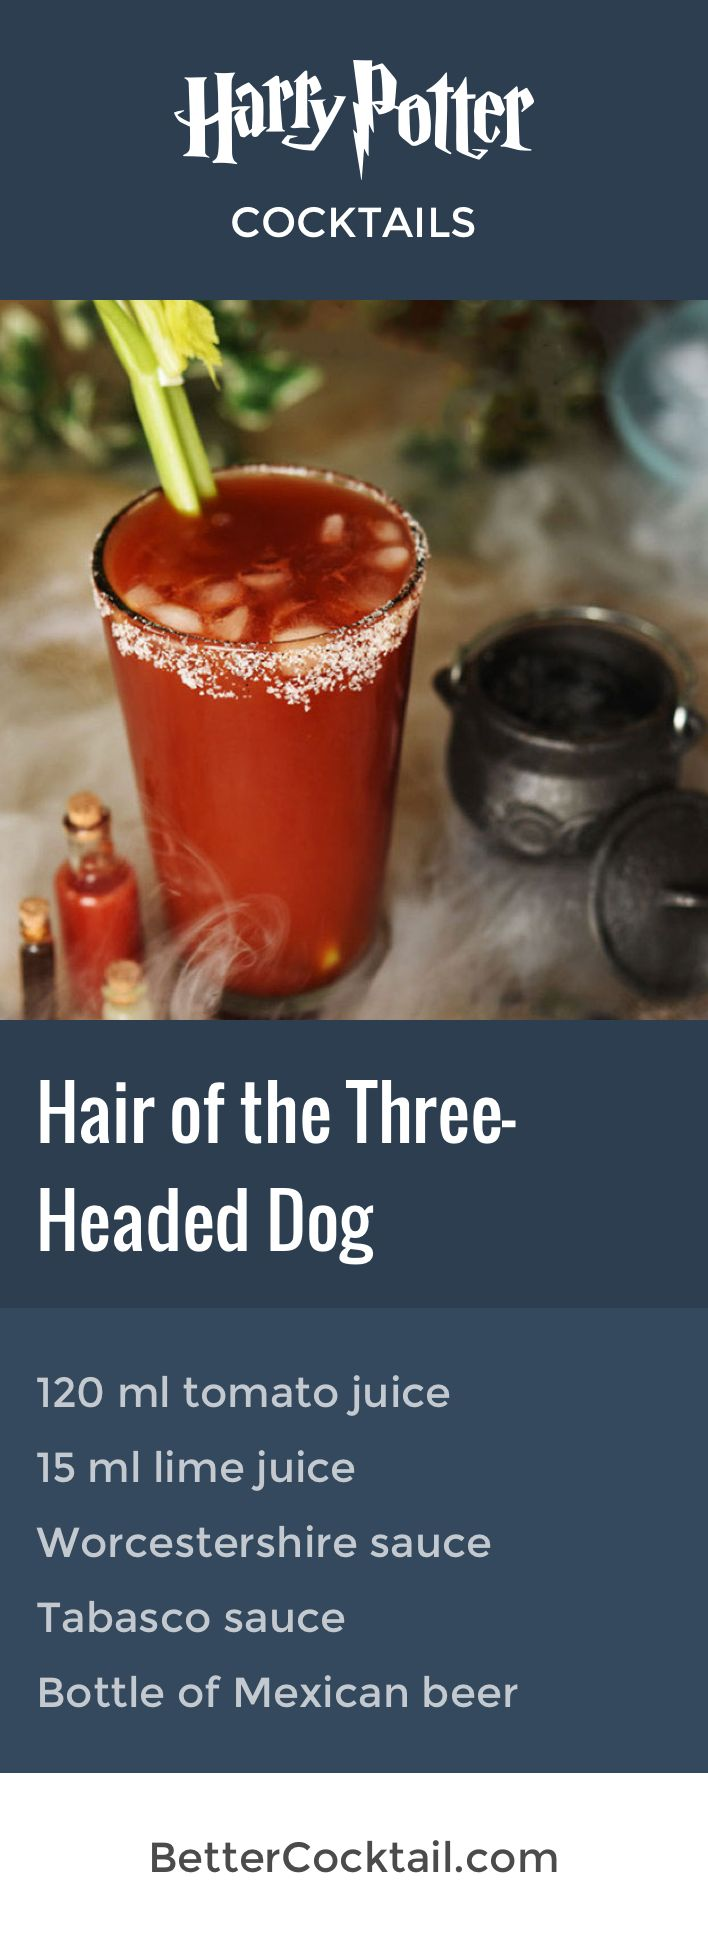 """Our themed Harry Potter cocktail """"Hair of the Three-Headed Dog"""" is a Bloody Mary with a twist. A perfect drink for tequila lovers at Halloween parties!"""